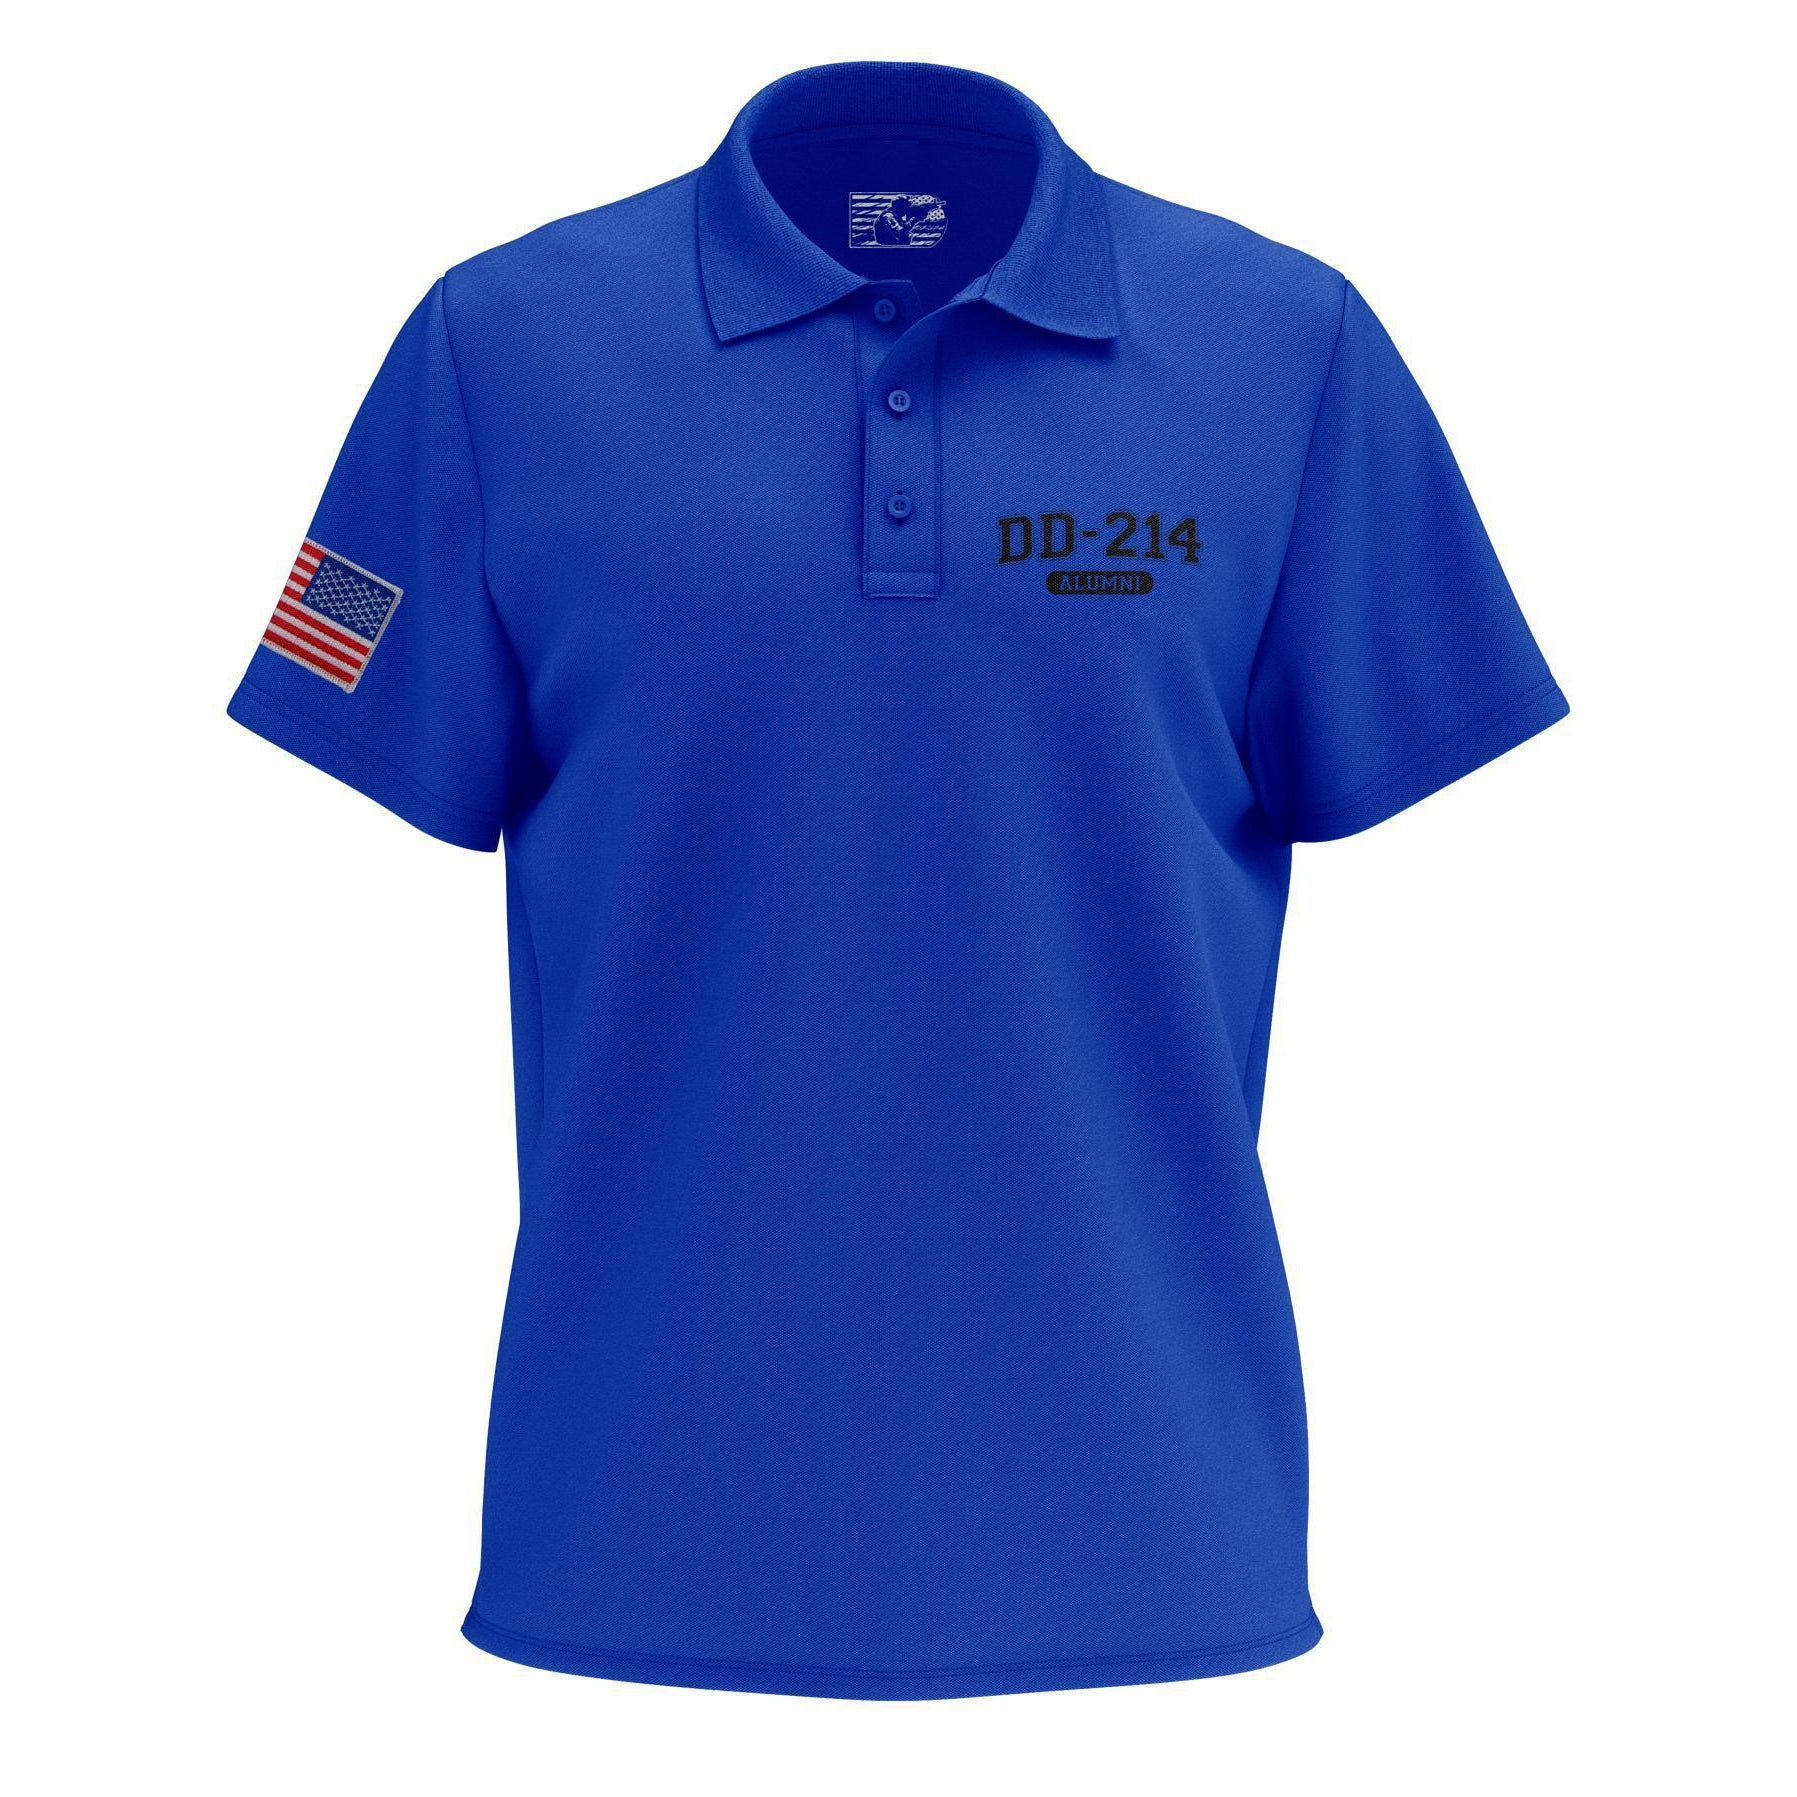 Army Veteran 29th Infantry Division Mens Regular-Fit Cotton Polo Shirt Short Sleeve U.S